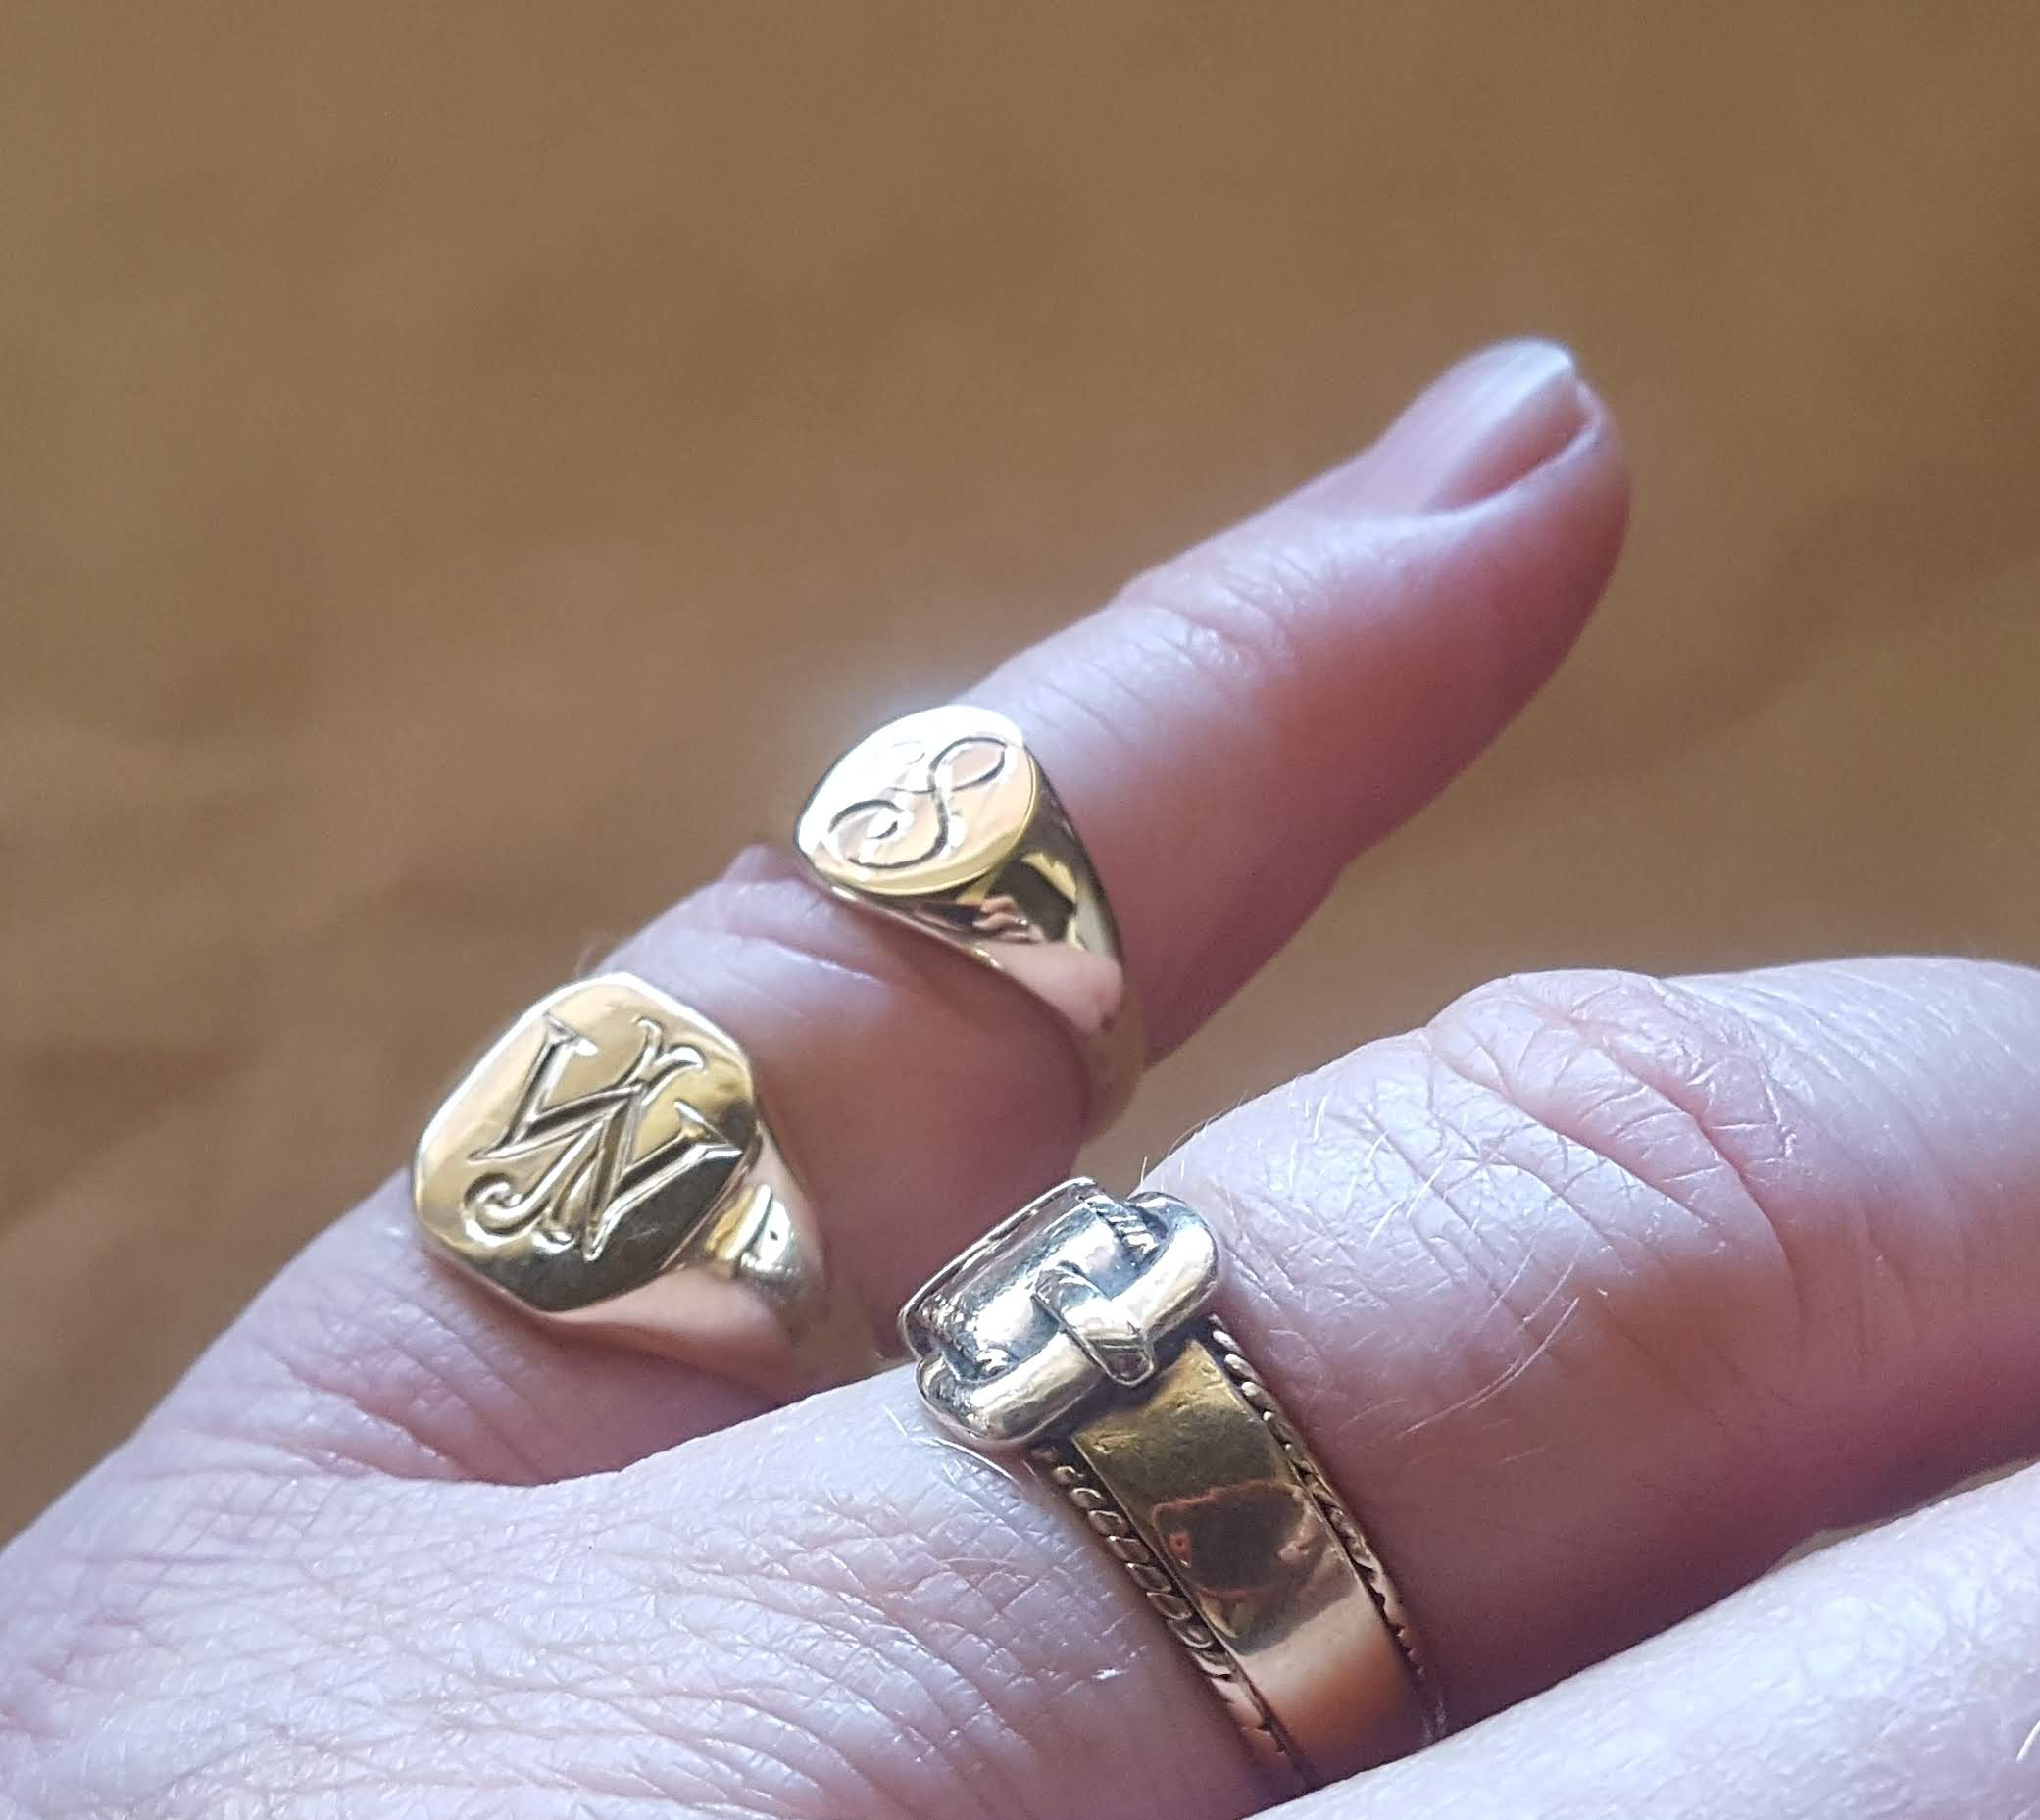 real signet rings on hand